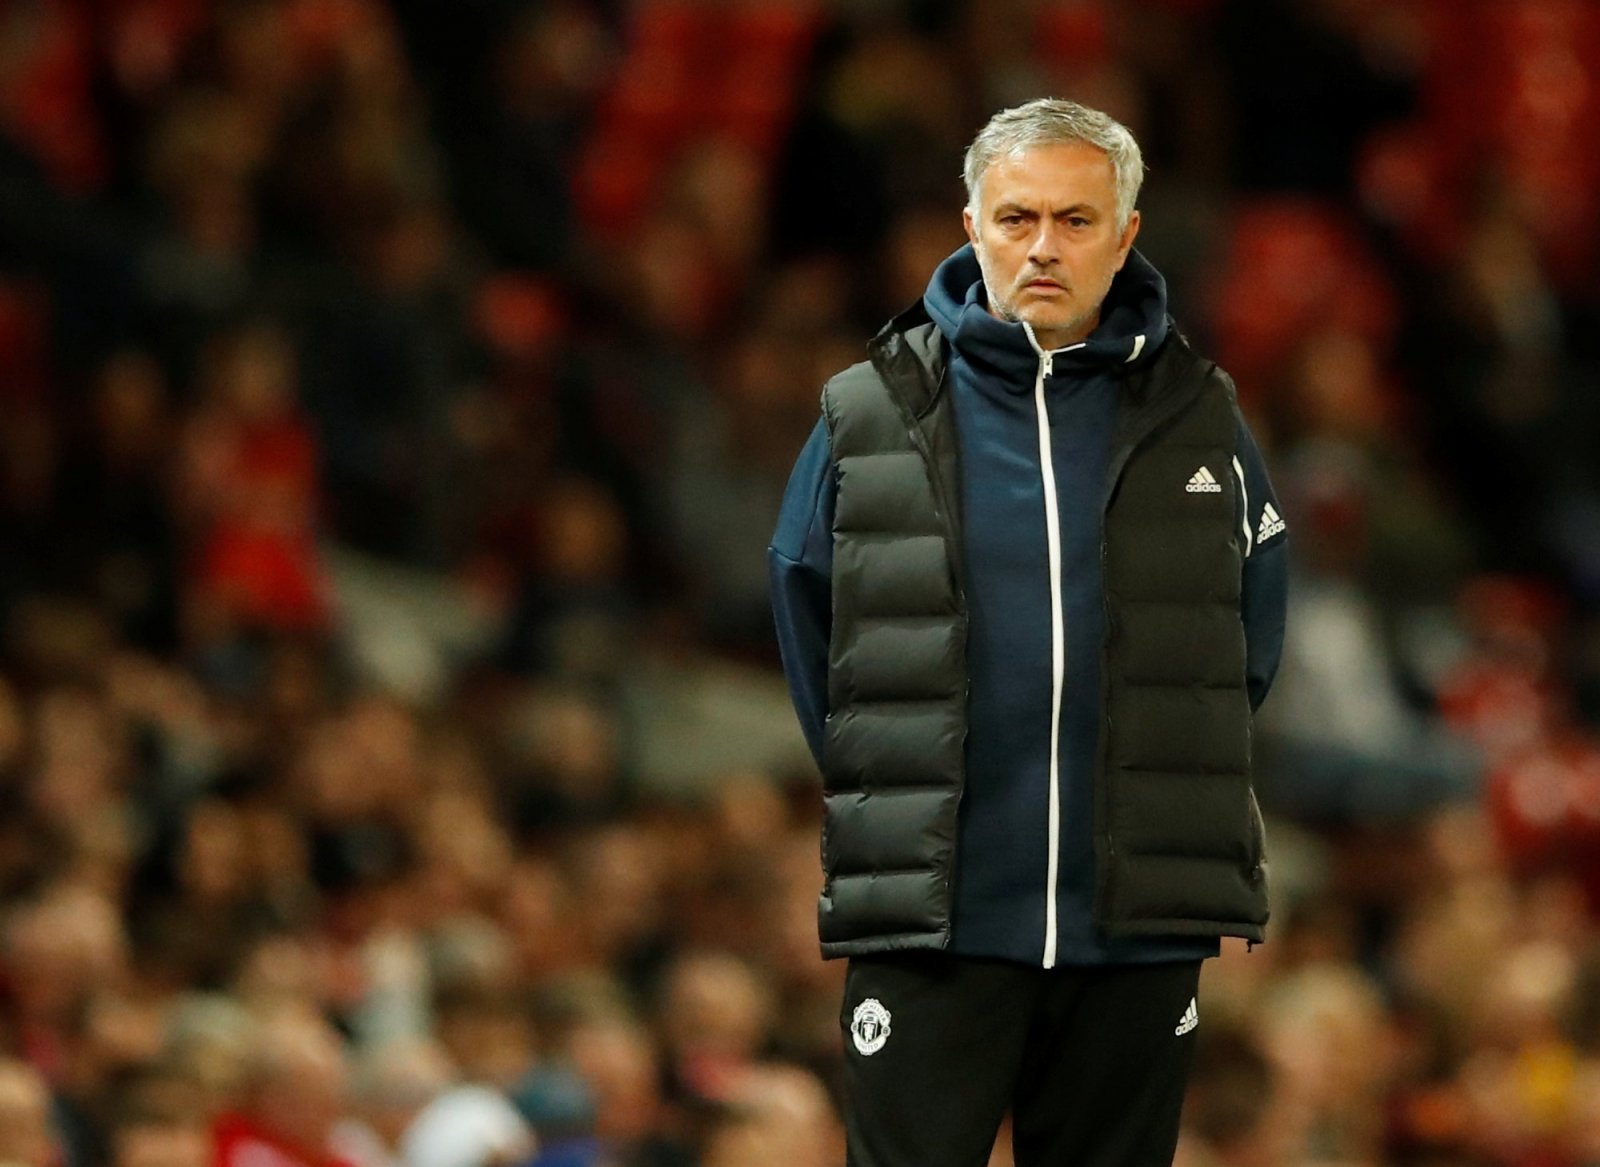 Tottenham Hotspur: Many fans have no interest in Jose Mourinho managing their club